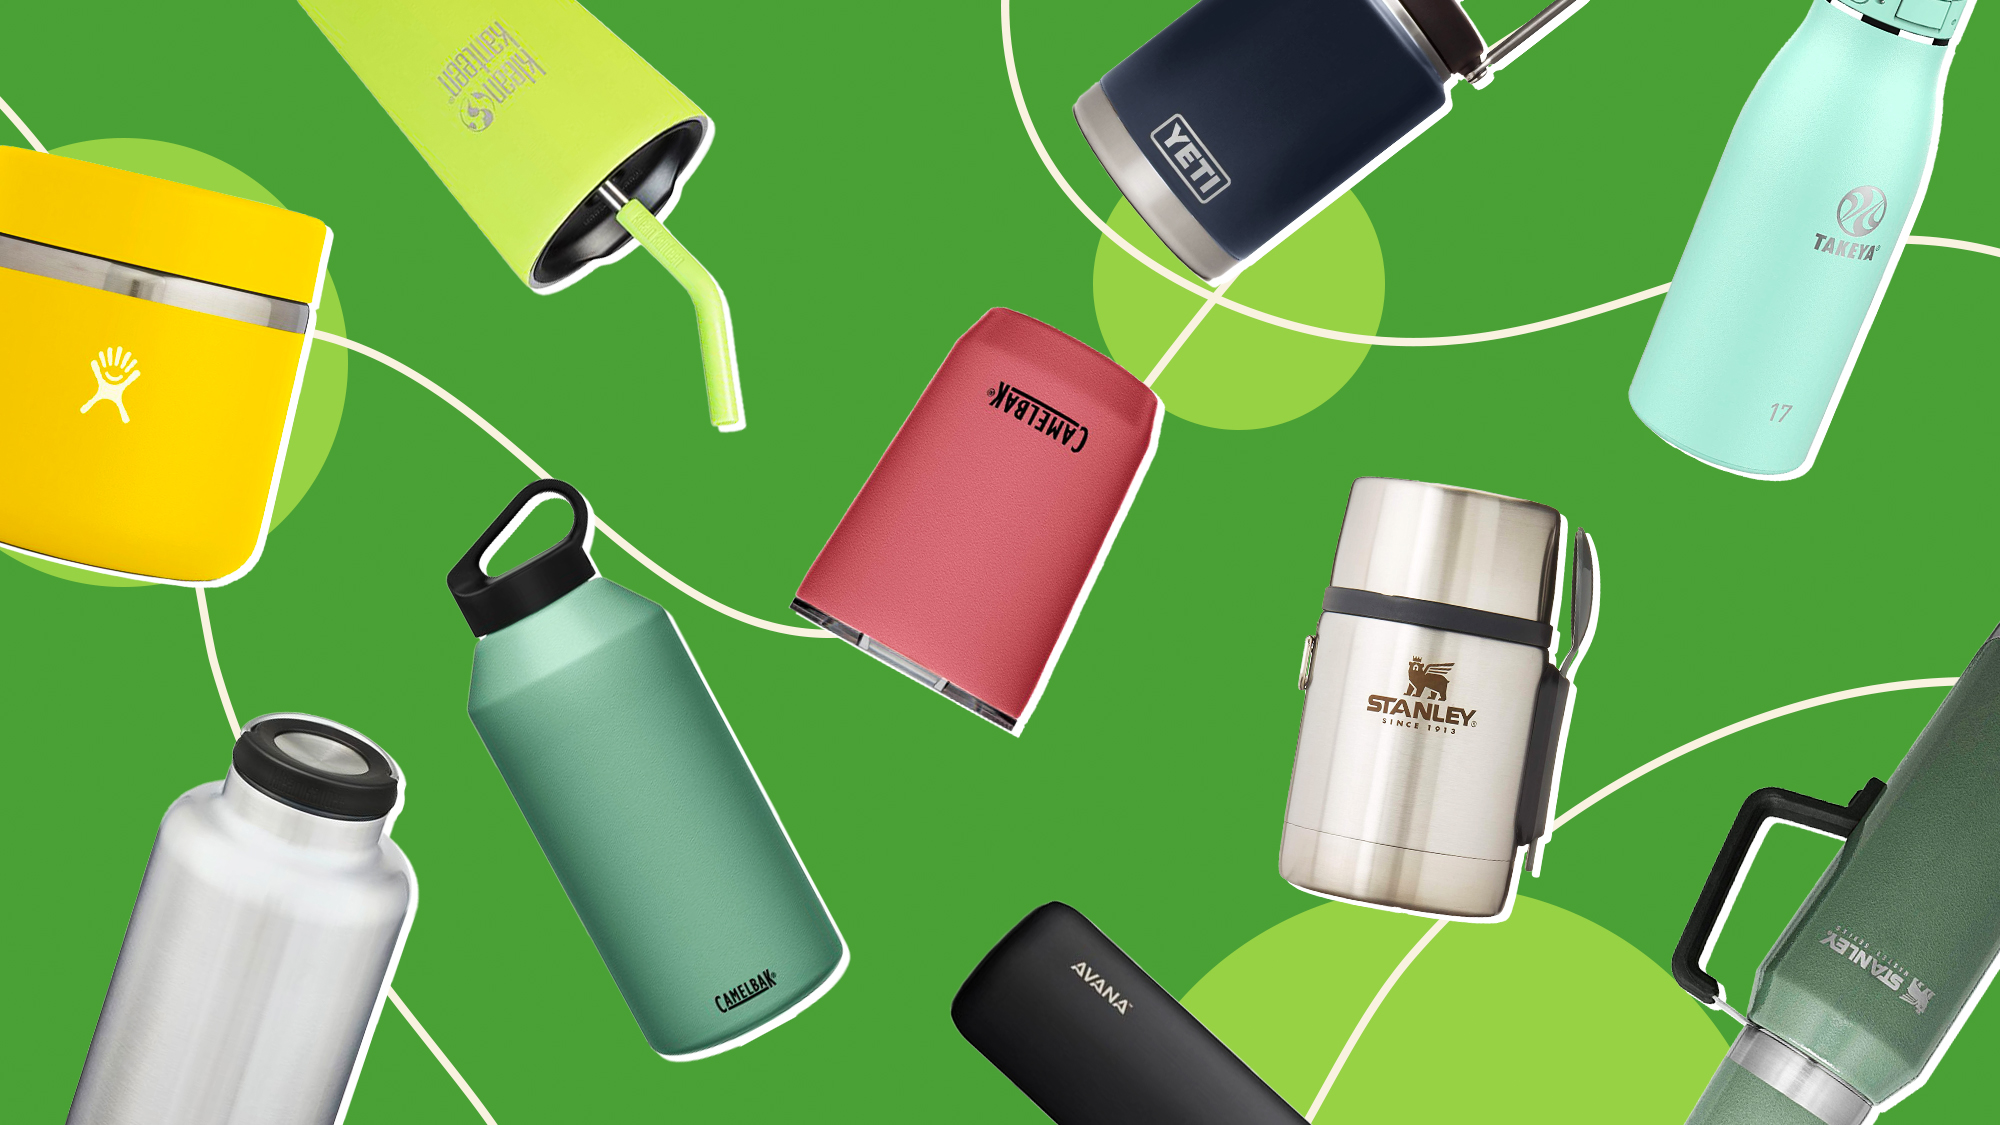 A selection of insulated water bottles on a designed background